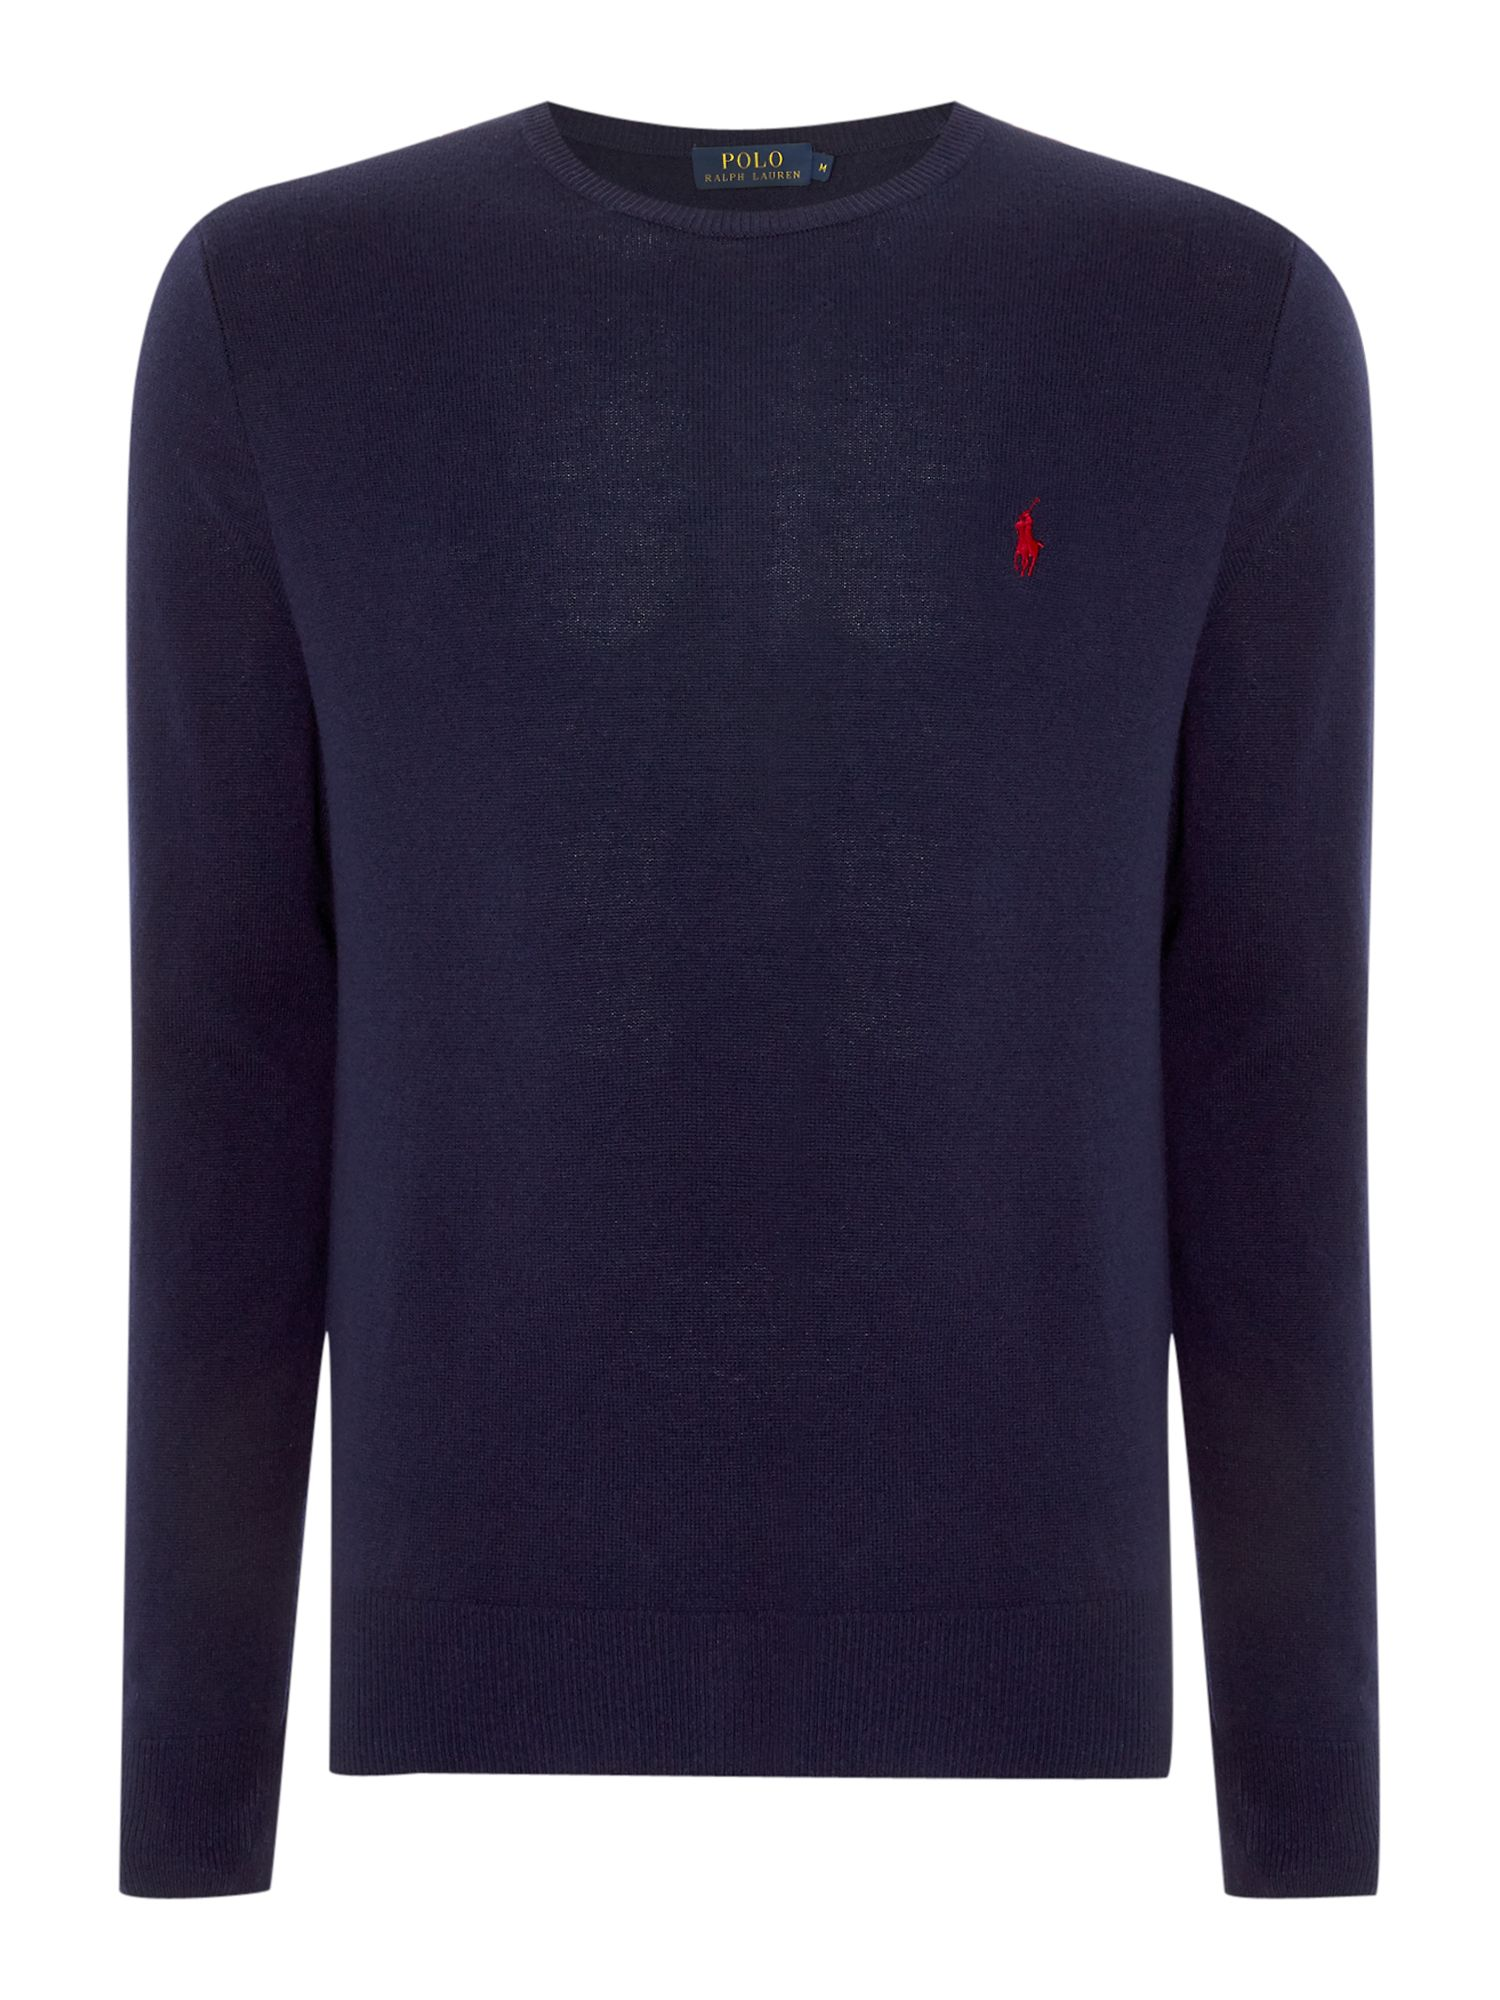 Crew neck wool jumper